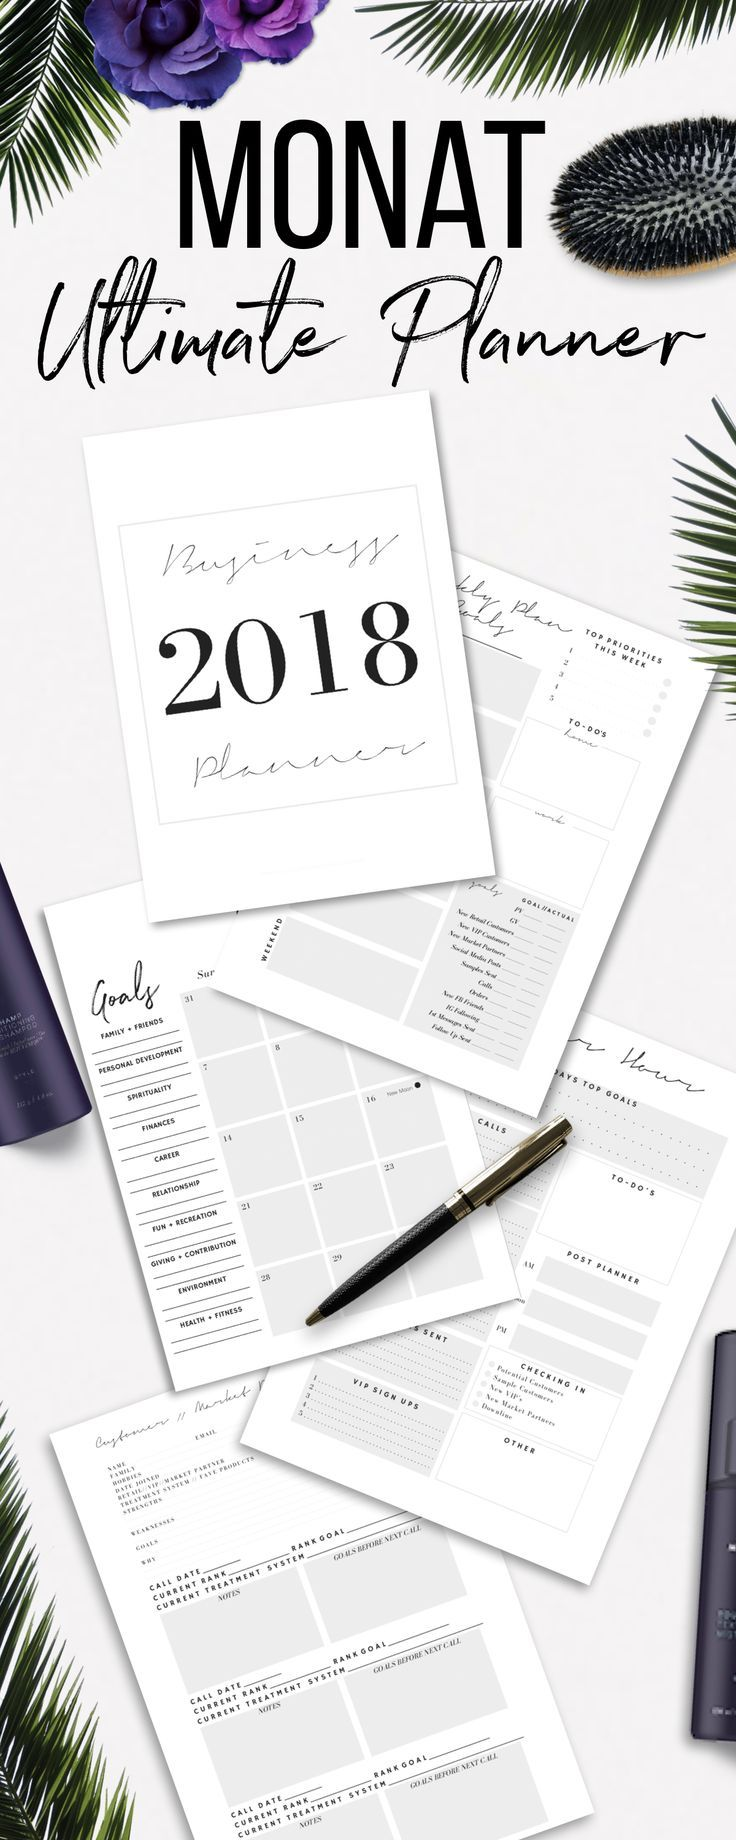 Monat Business, Monat Planner, Monat before and afters